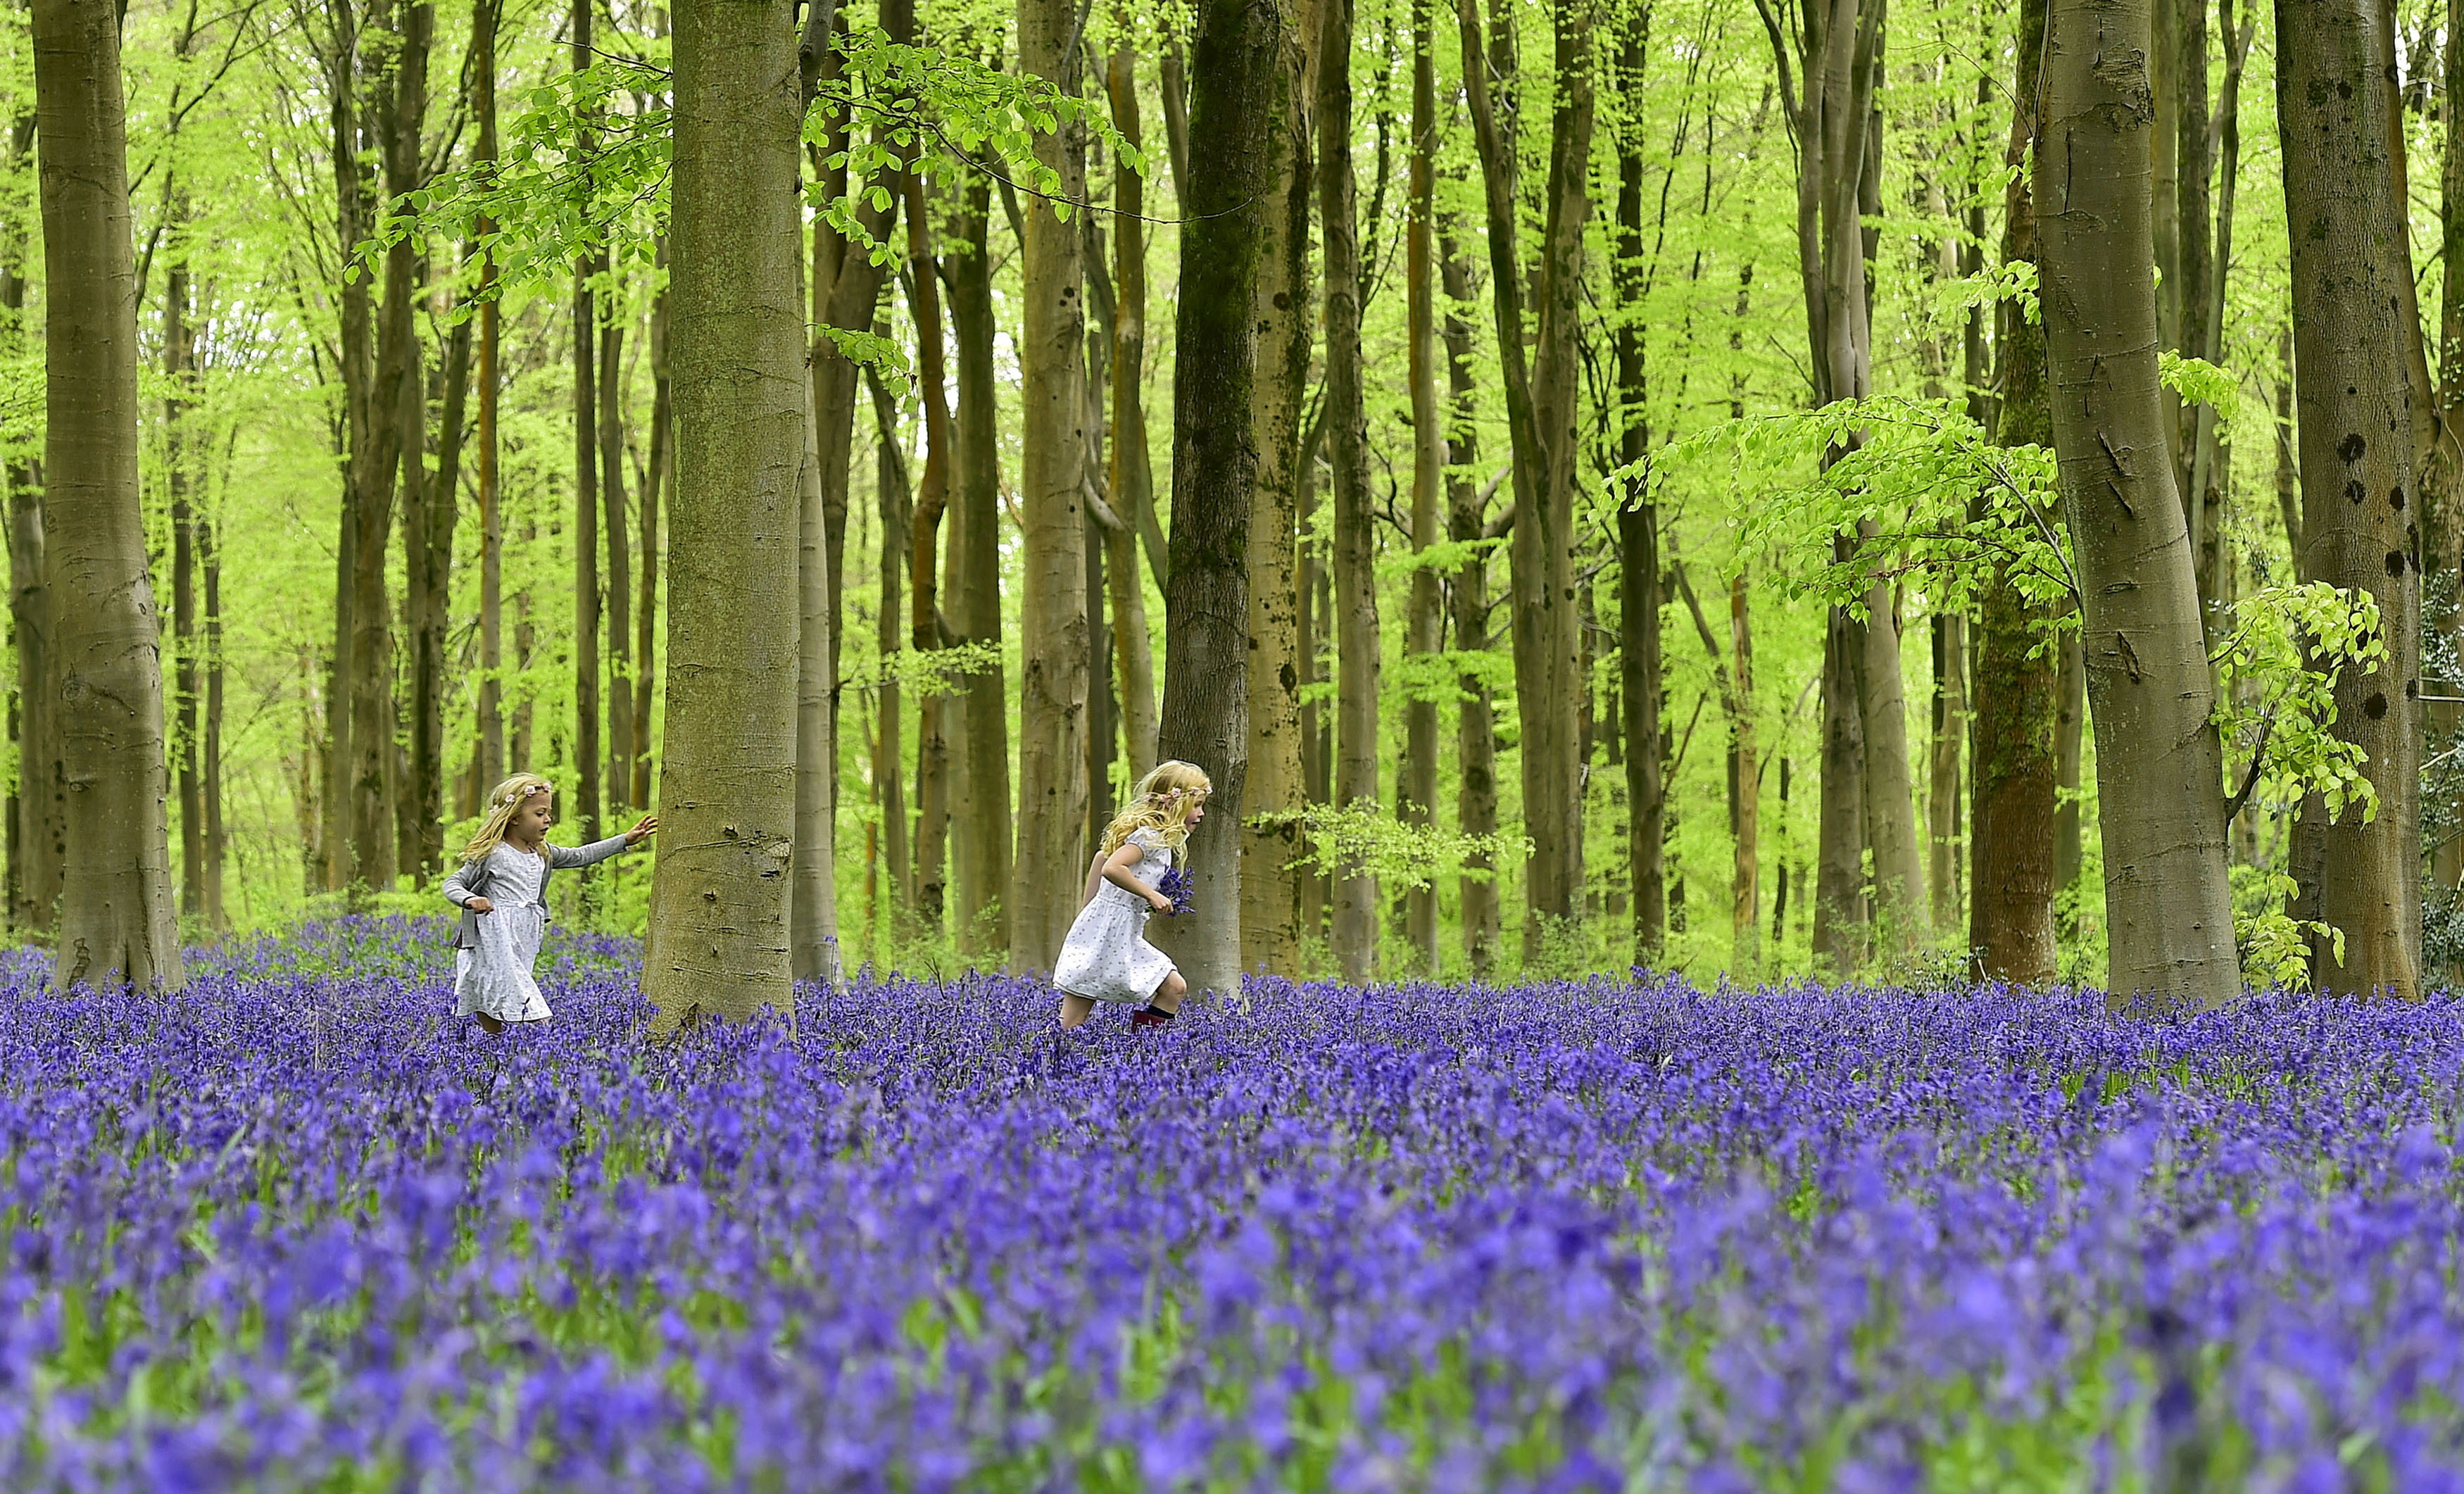 Local youngsters Bella (L) and Daisy run through a forest covered in bluebells near Marlborough in southern England, May 4, 2015. The Savernake Forest and West Woods, managed by the Forestry Commission and replanted in the 1930s to 1950s with beech trees, provide one of the most spectacular sites in Britain for seeing bluebells at this time of year. REUTERS/Toby Melville      TPX IMAGES OF THE DAY      - GF10000083553